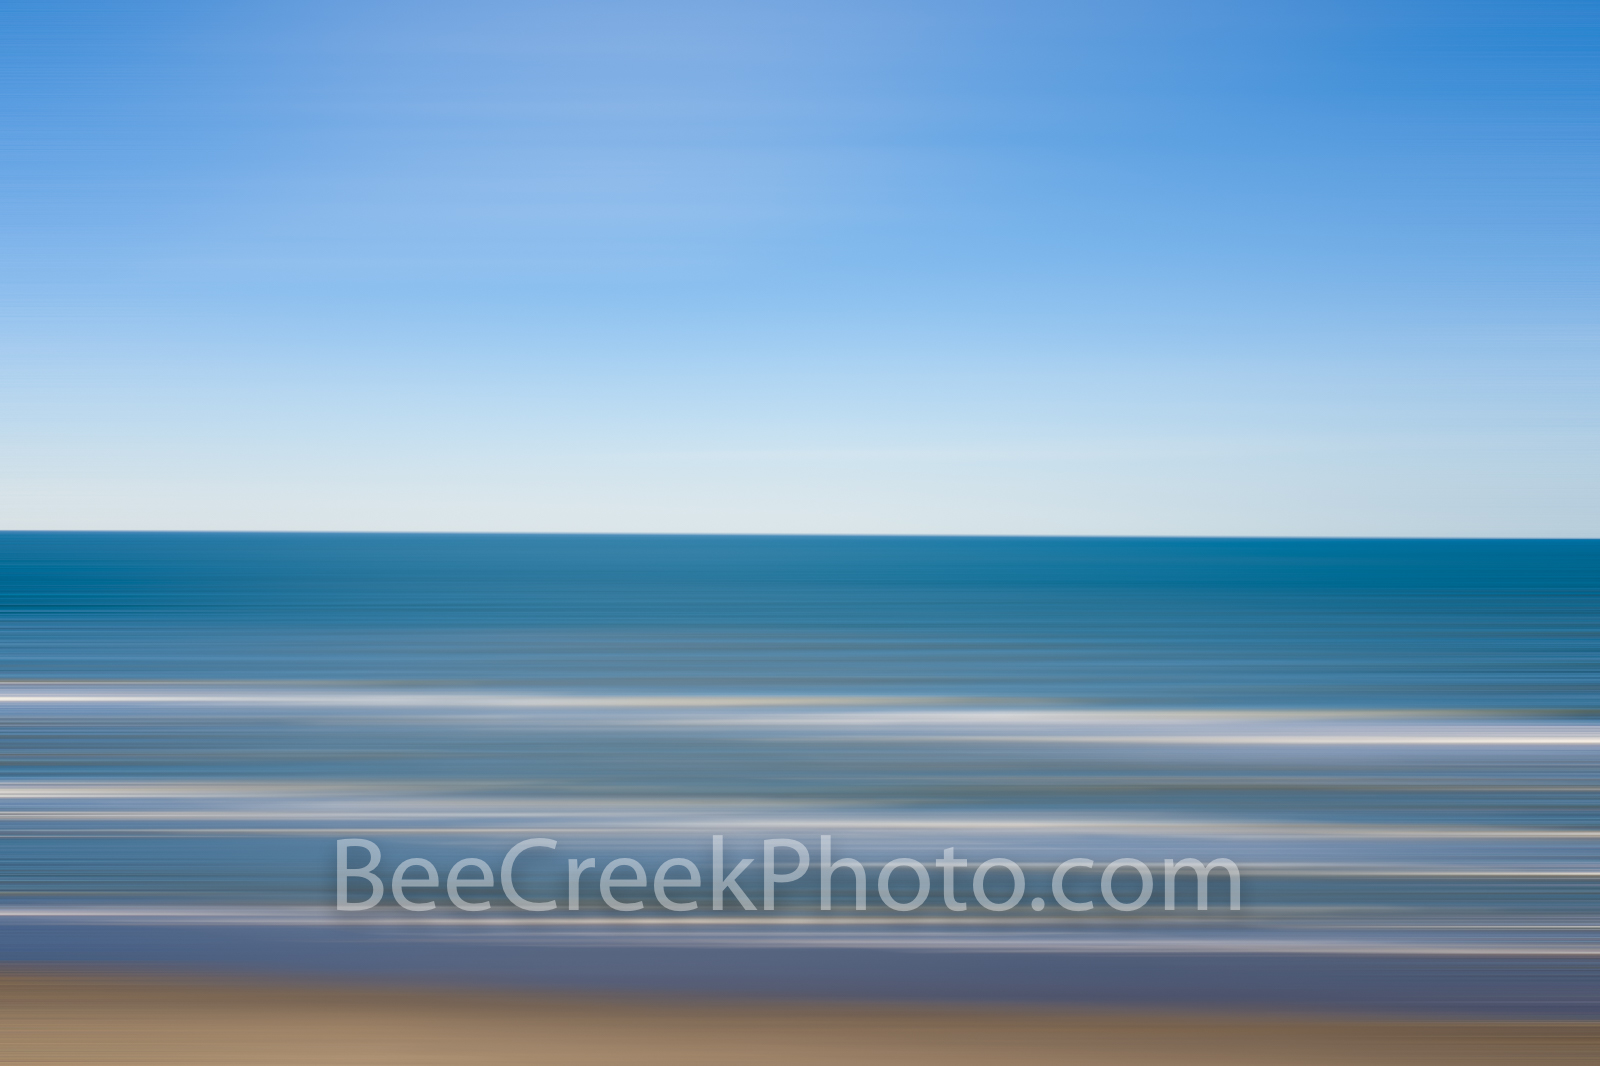 blue ocean, wave, waves, seascape, blur, motion blur, abstract, water, ocean, blue sky, blue water, sea, sandy beach, serene, gulf of mexico, travel, adventure,, photo